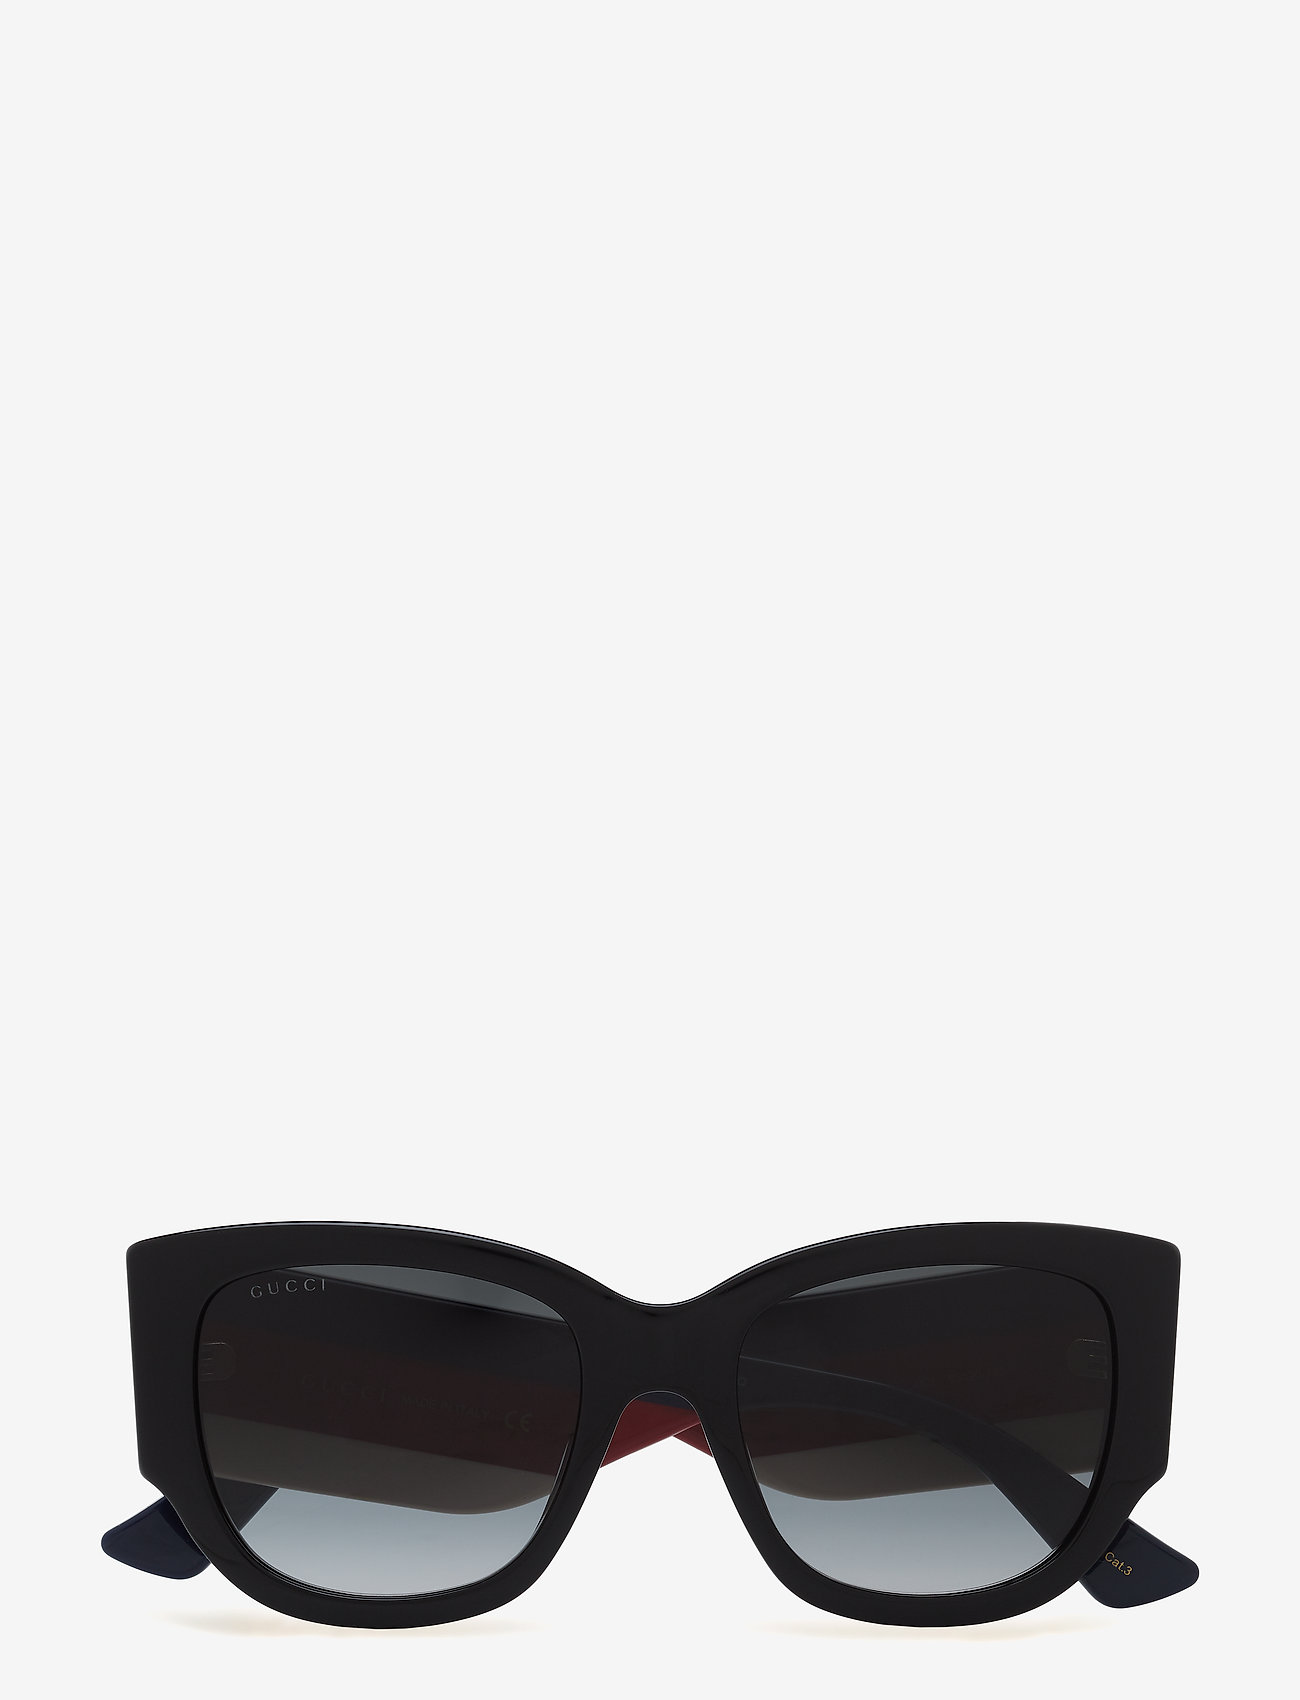 Gucci Sunglasses - GG0276S - d-shaped - black-multicolor-grey - 0